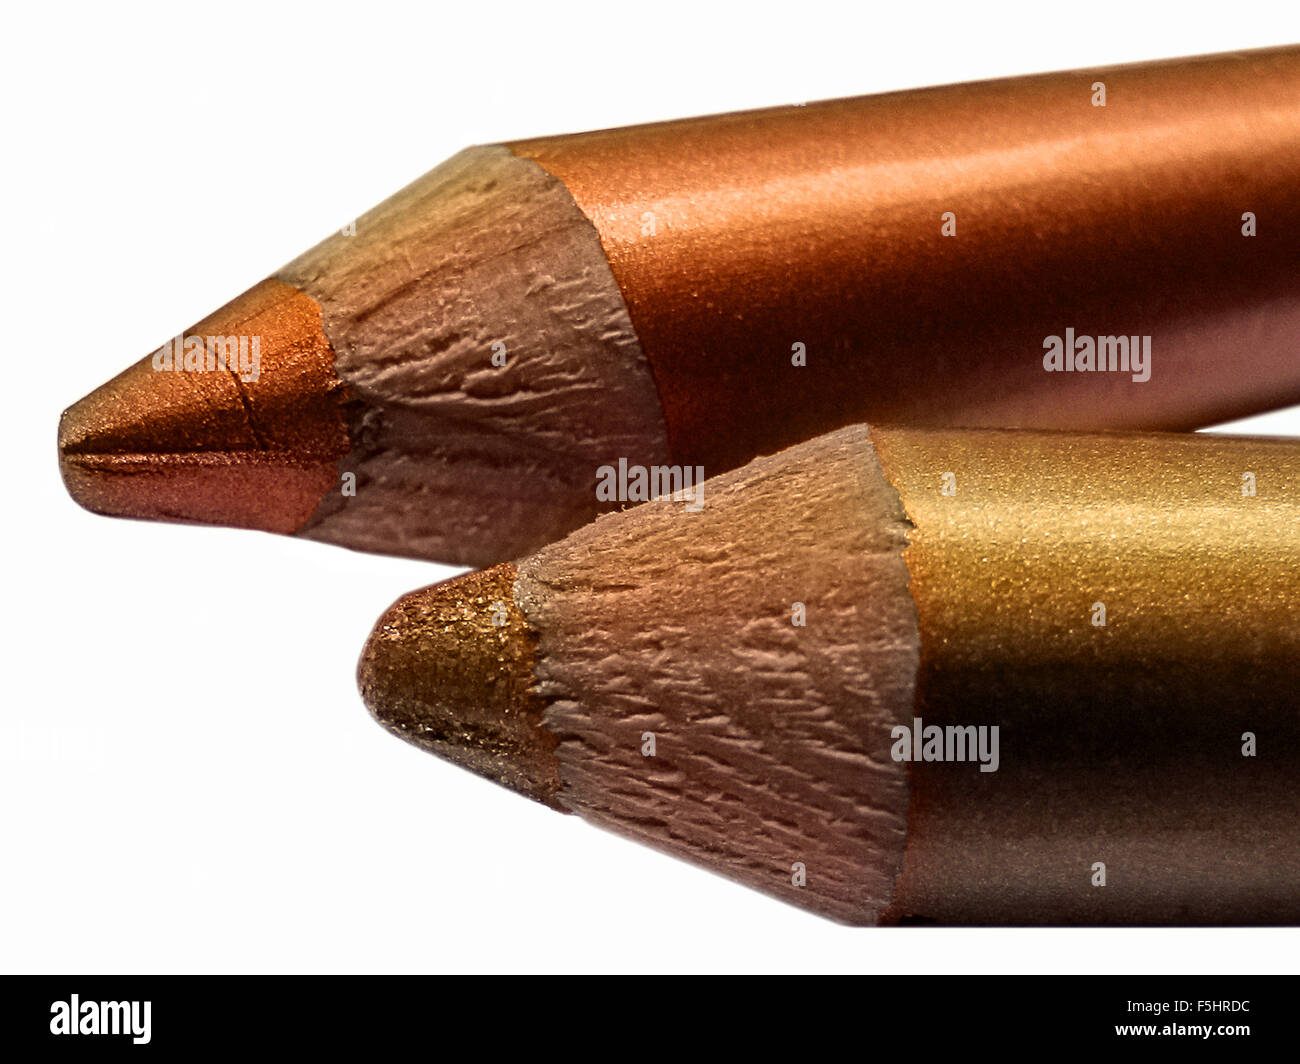 Part of metallic cream eyeshadow pencils orange and brown gold - Stock Image